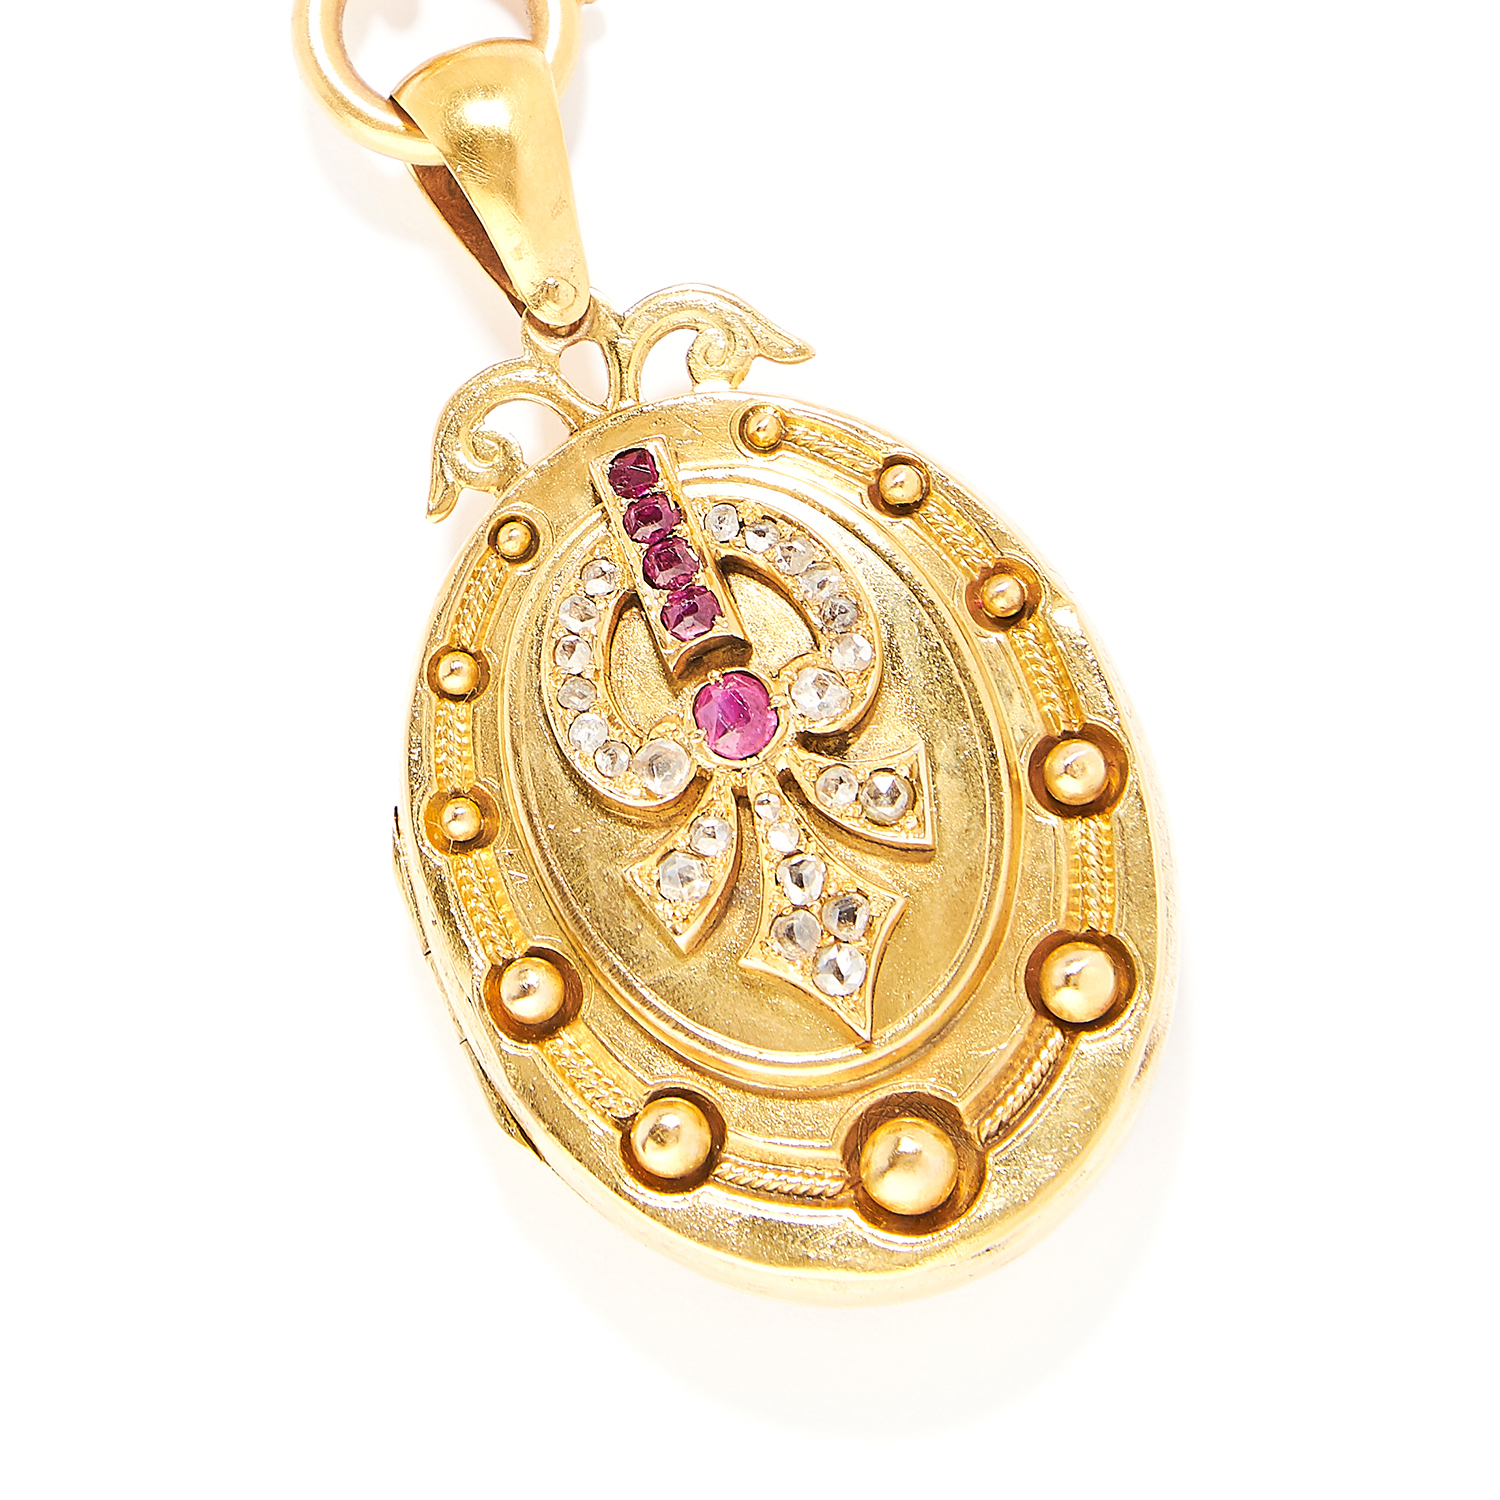 ANTIQUE RUBY AND DIAMOND LOCKET AND CHAIN in high carat yellow gold, the locket is set with rose cut - Bild 2 aus 3